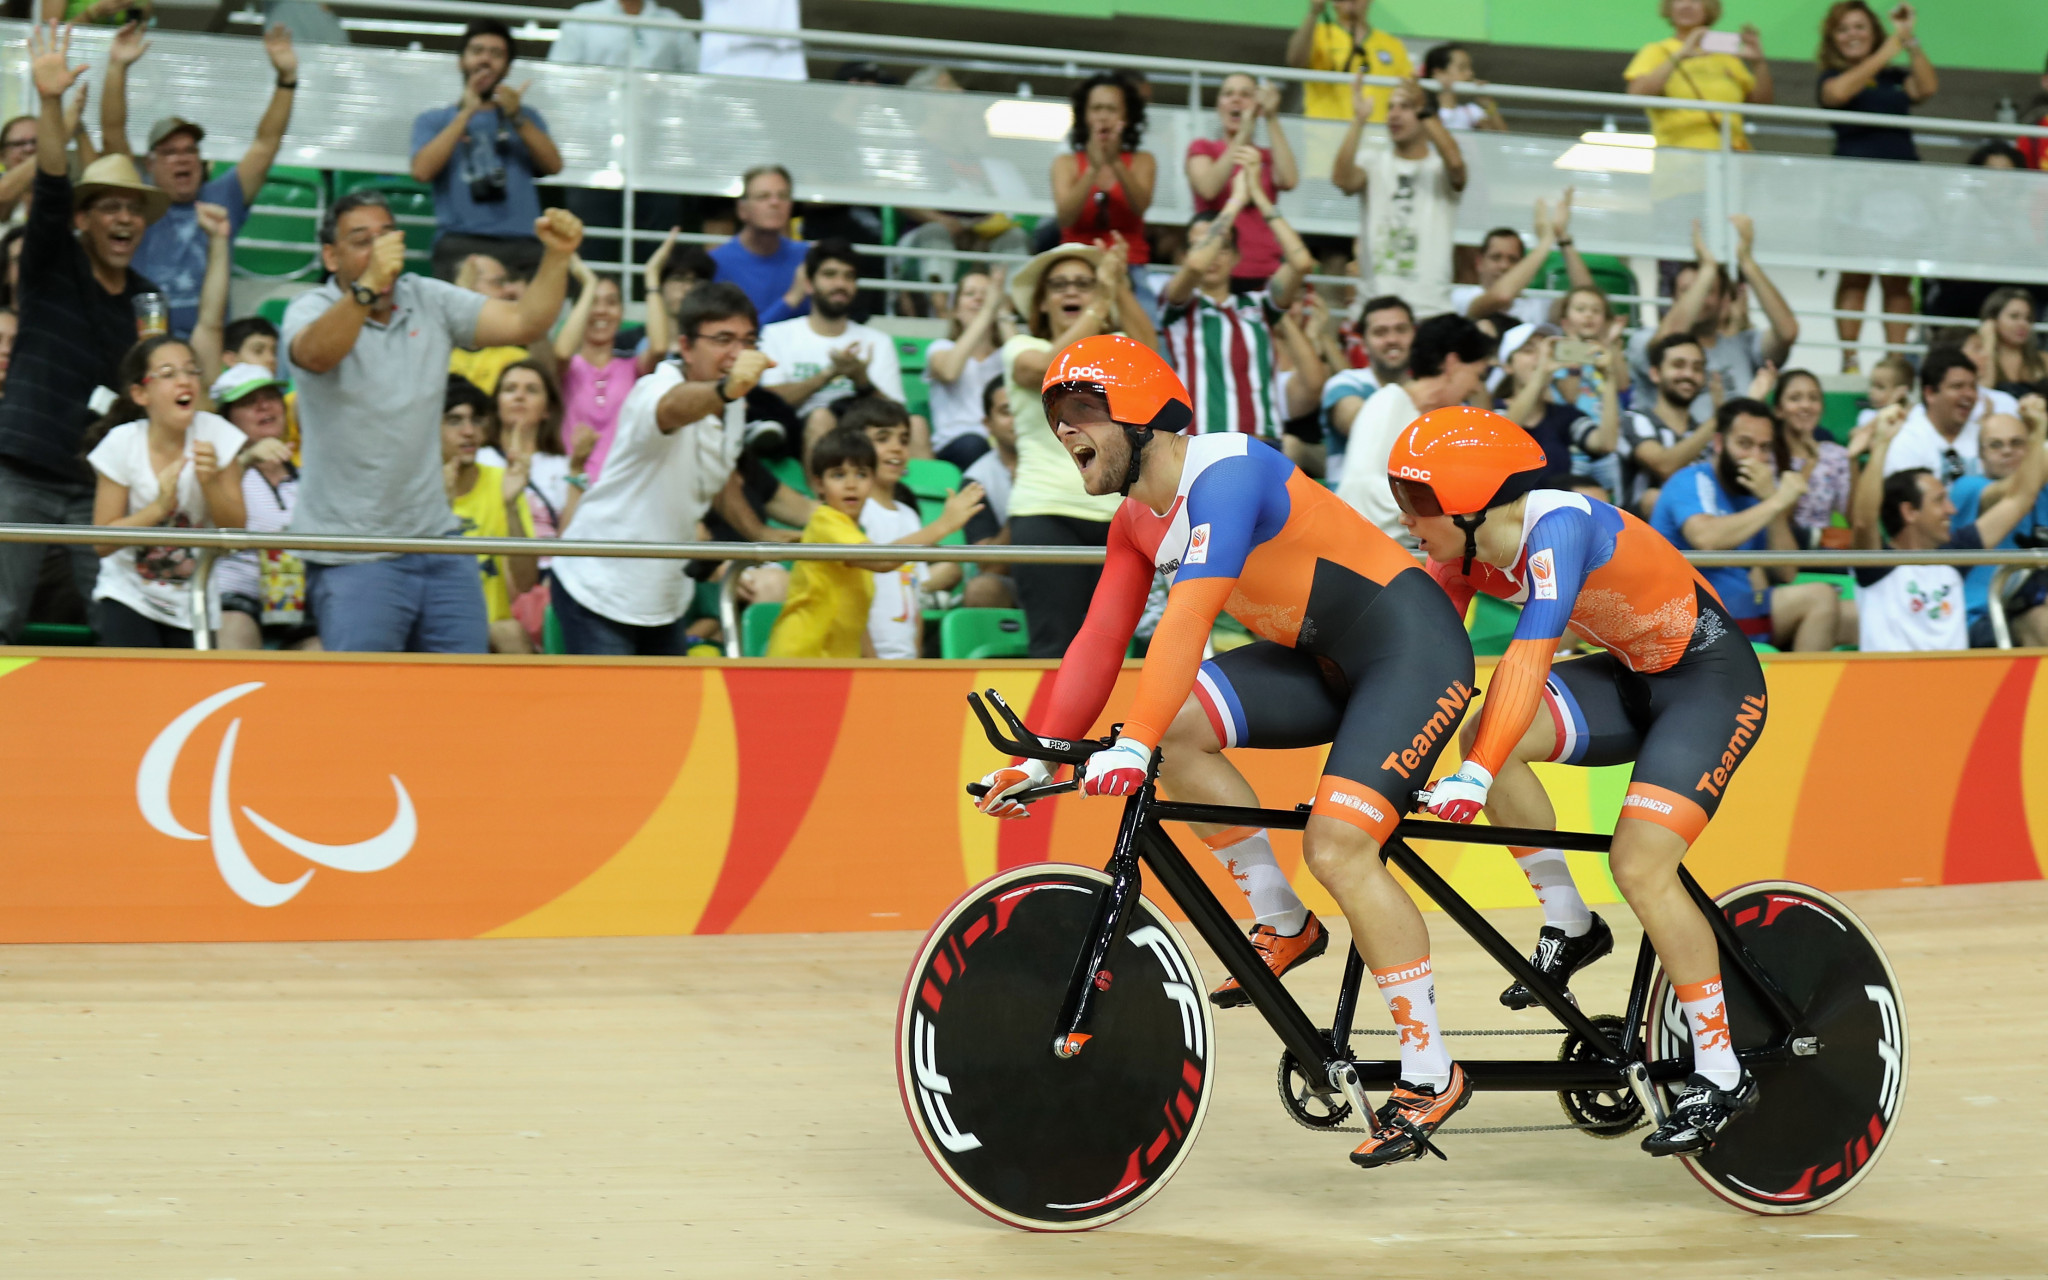 Para-cycling will return to the Rio Olympic velodrome in March ©Getty Images